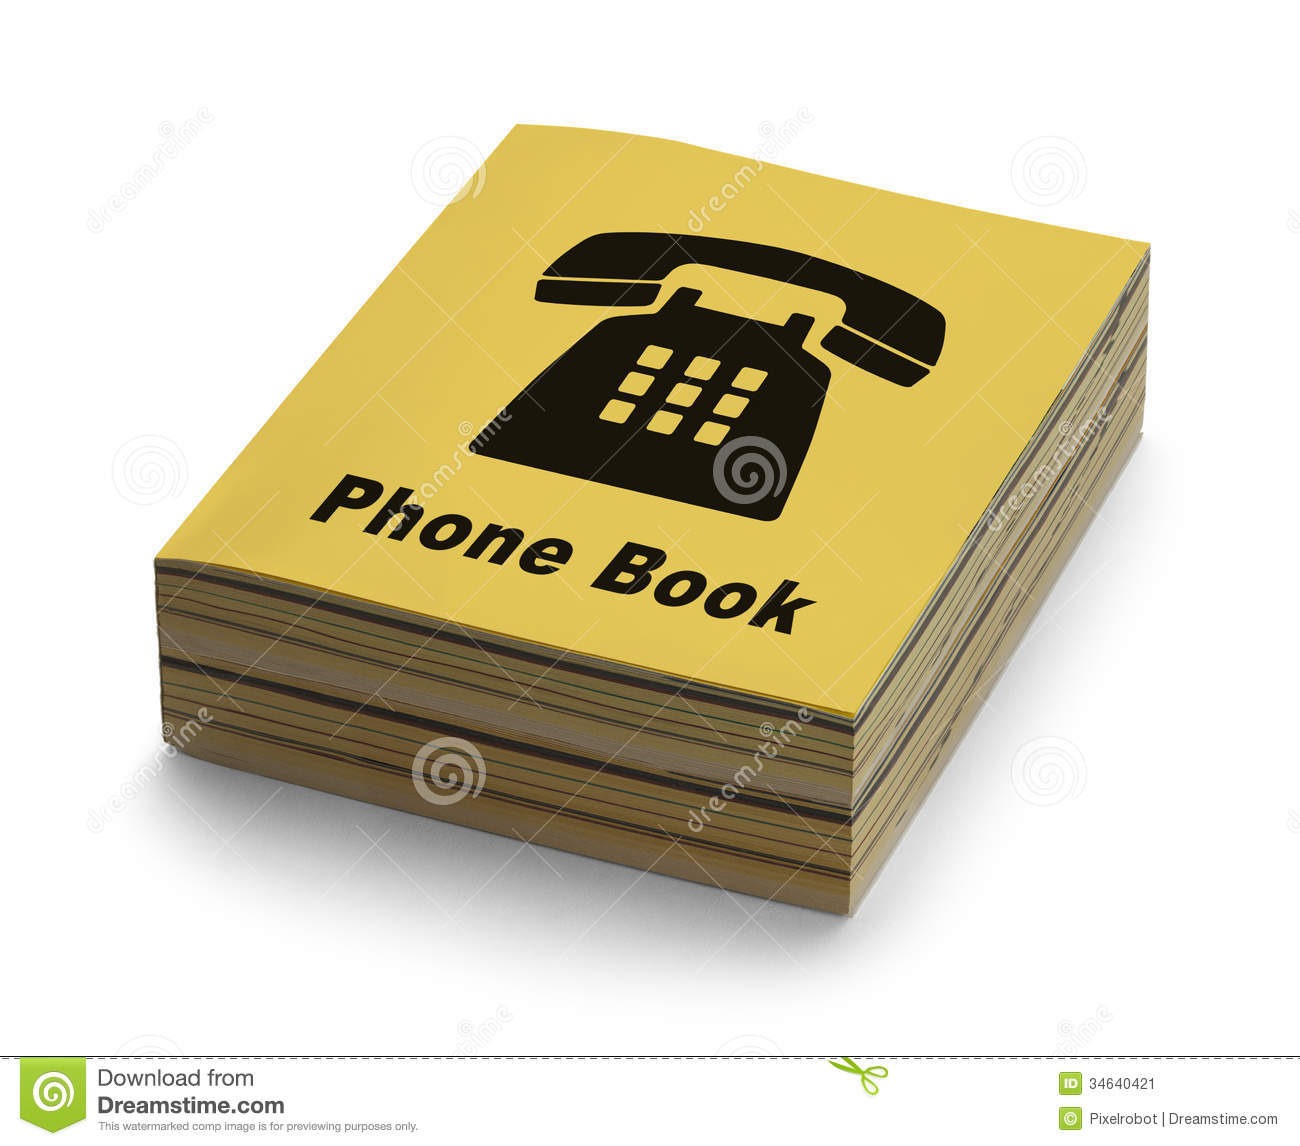 Unit phon book